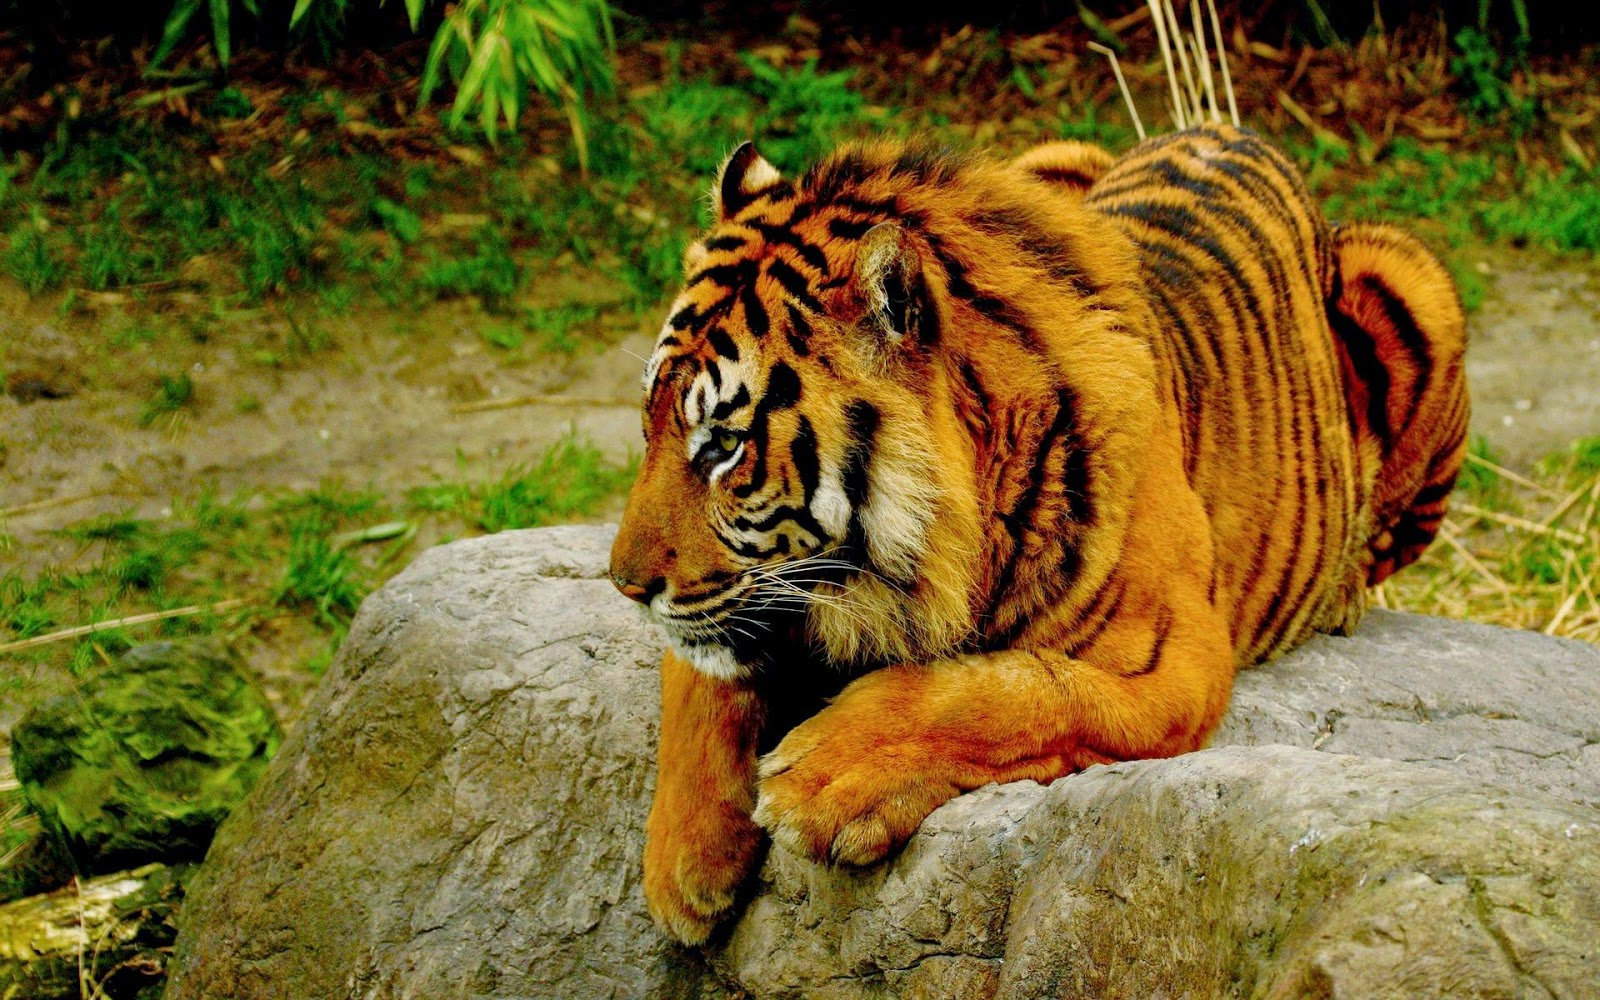 lovable images: wild tiger hd wallpapers free download || cute tiger